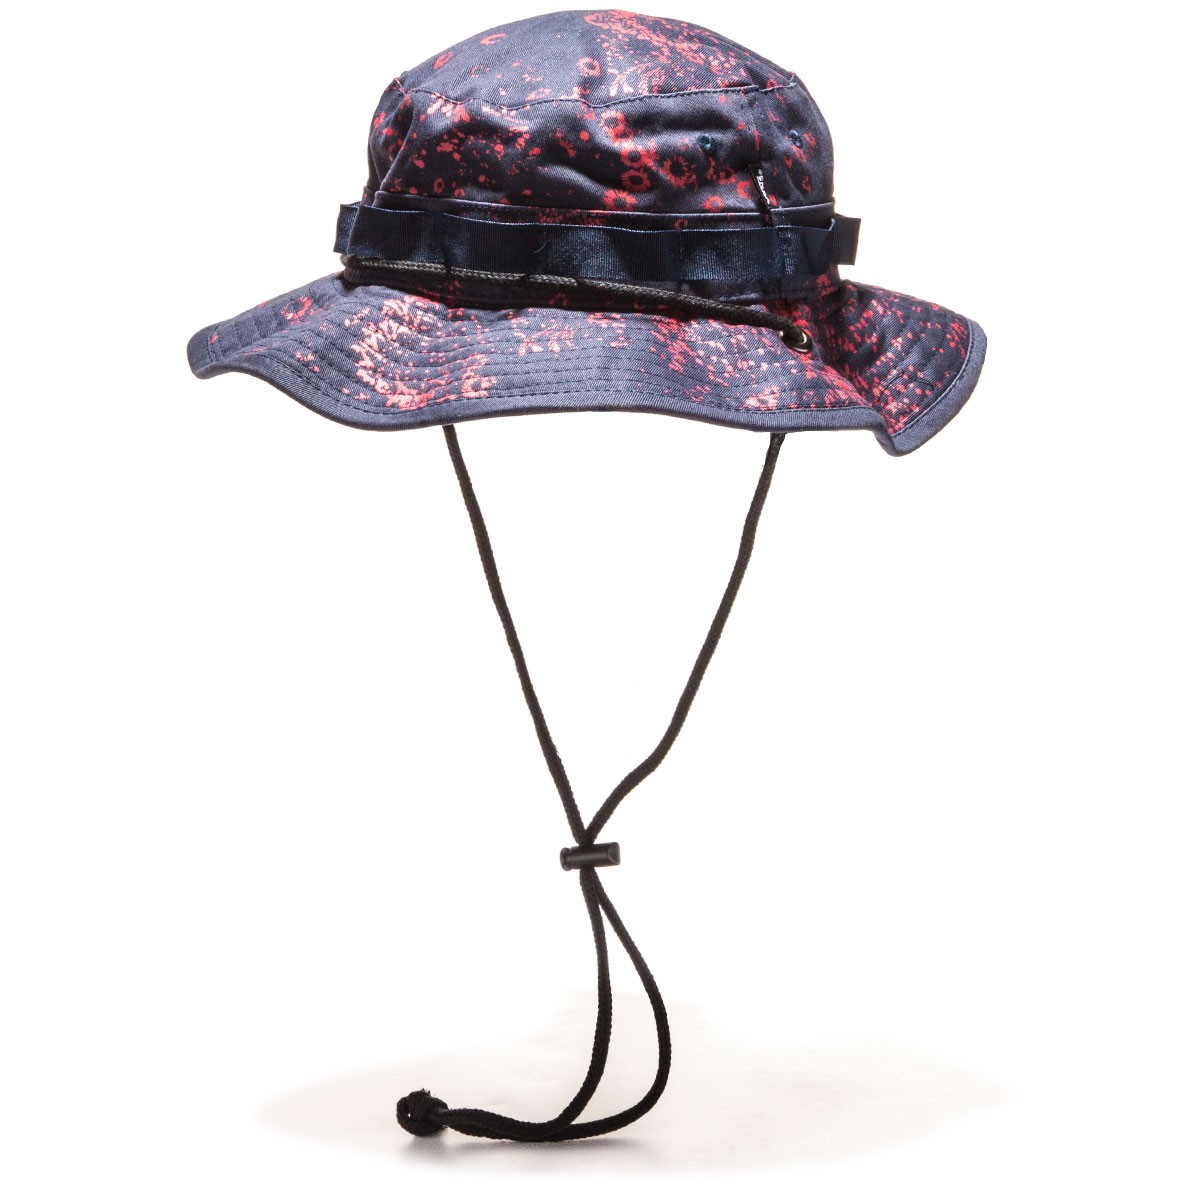 vans-boonie-bucket-hats-barnacle-beach-1.1507079858.jpg b09230a9d18